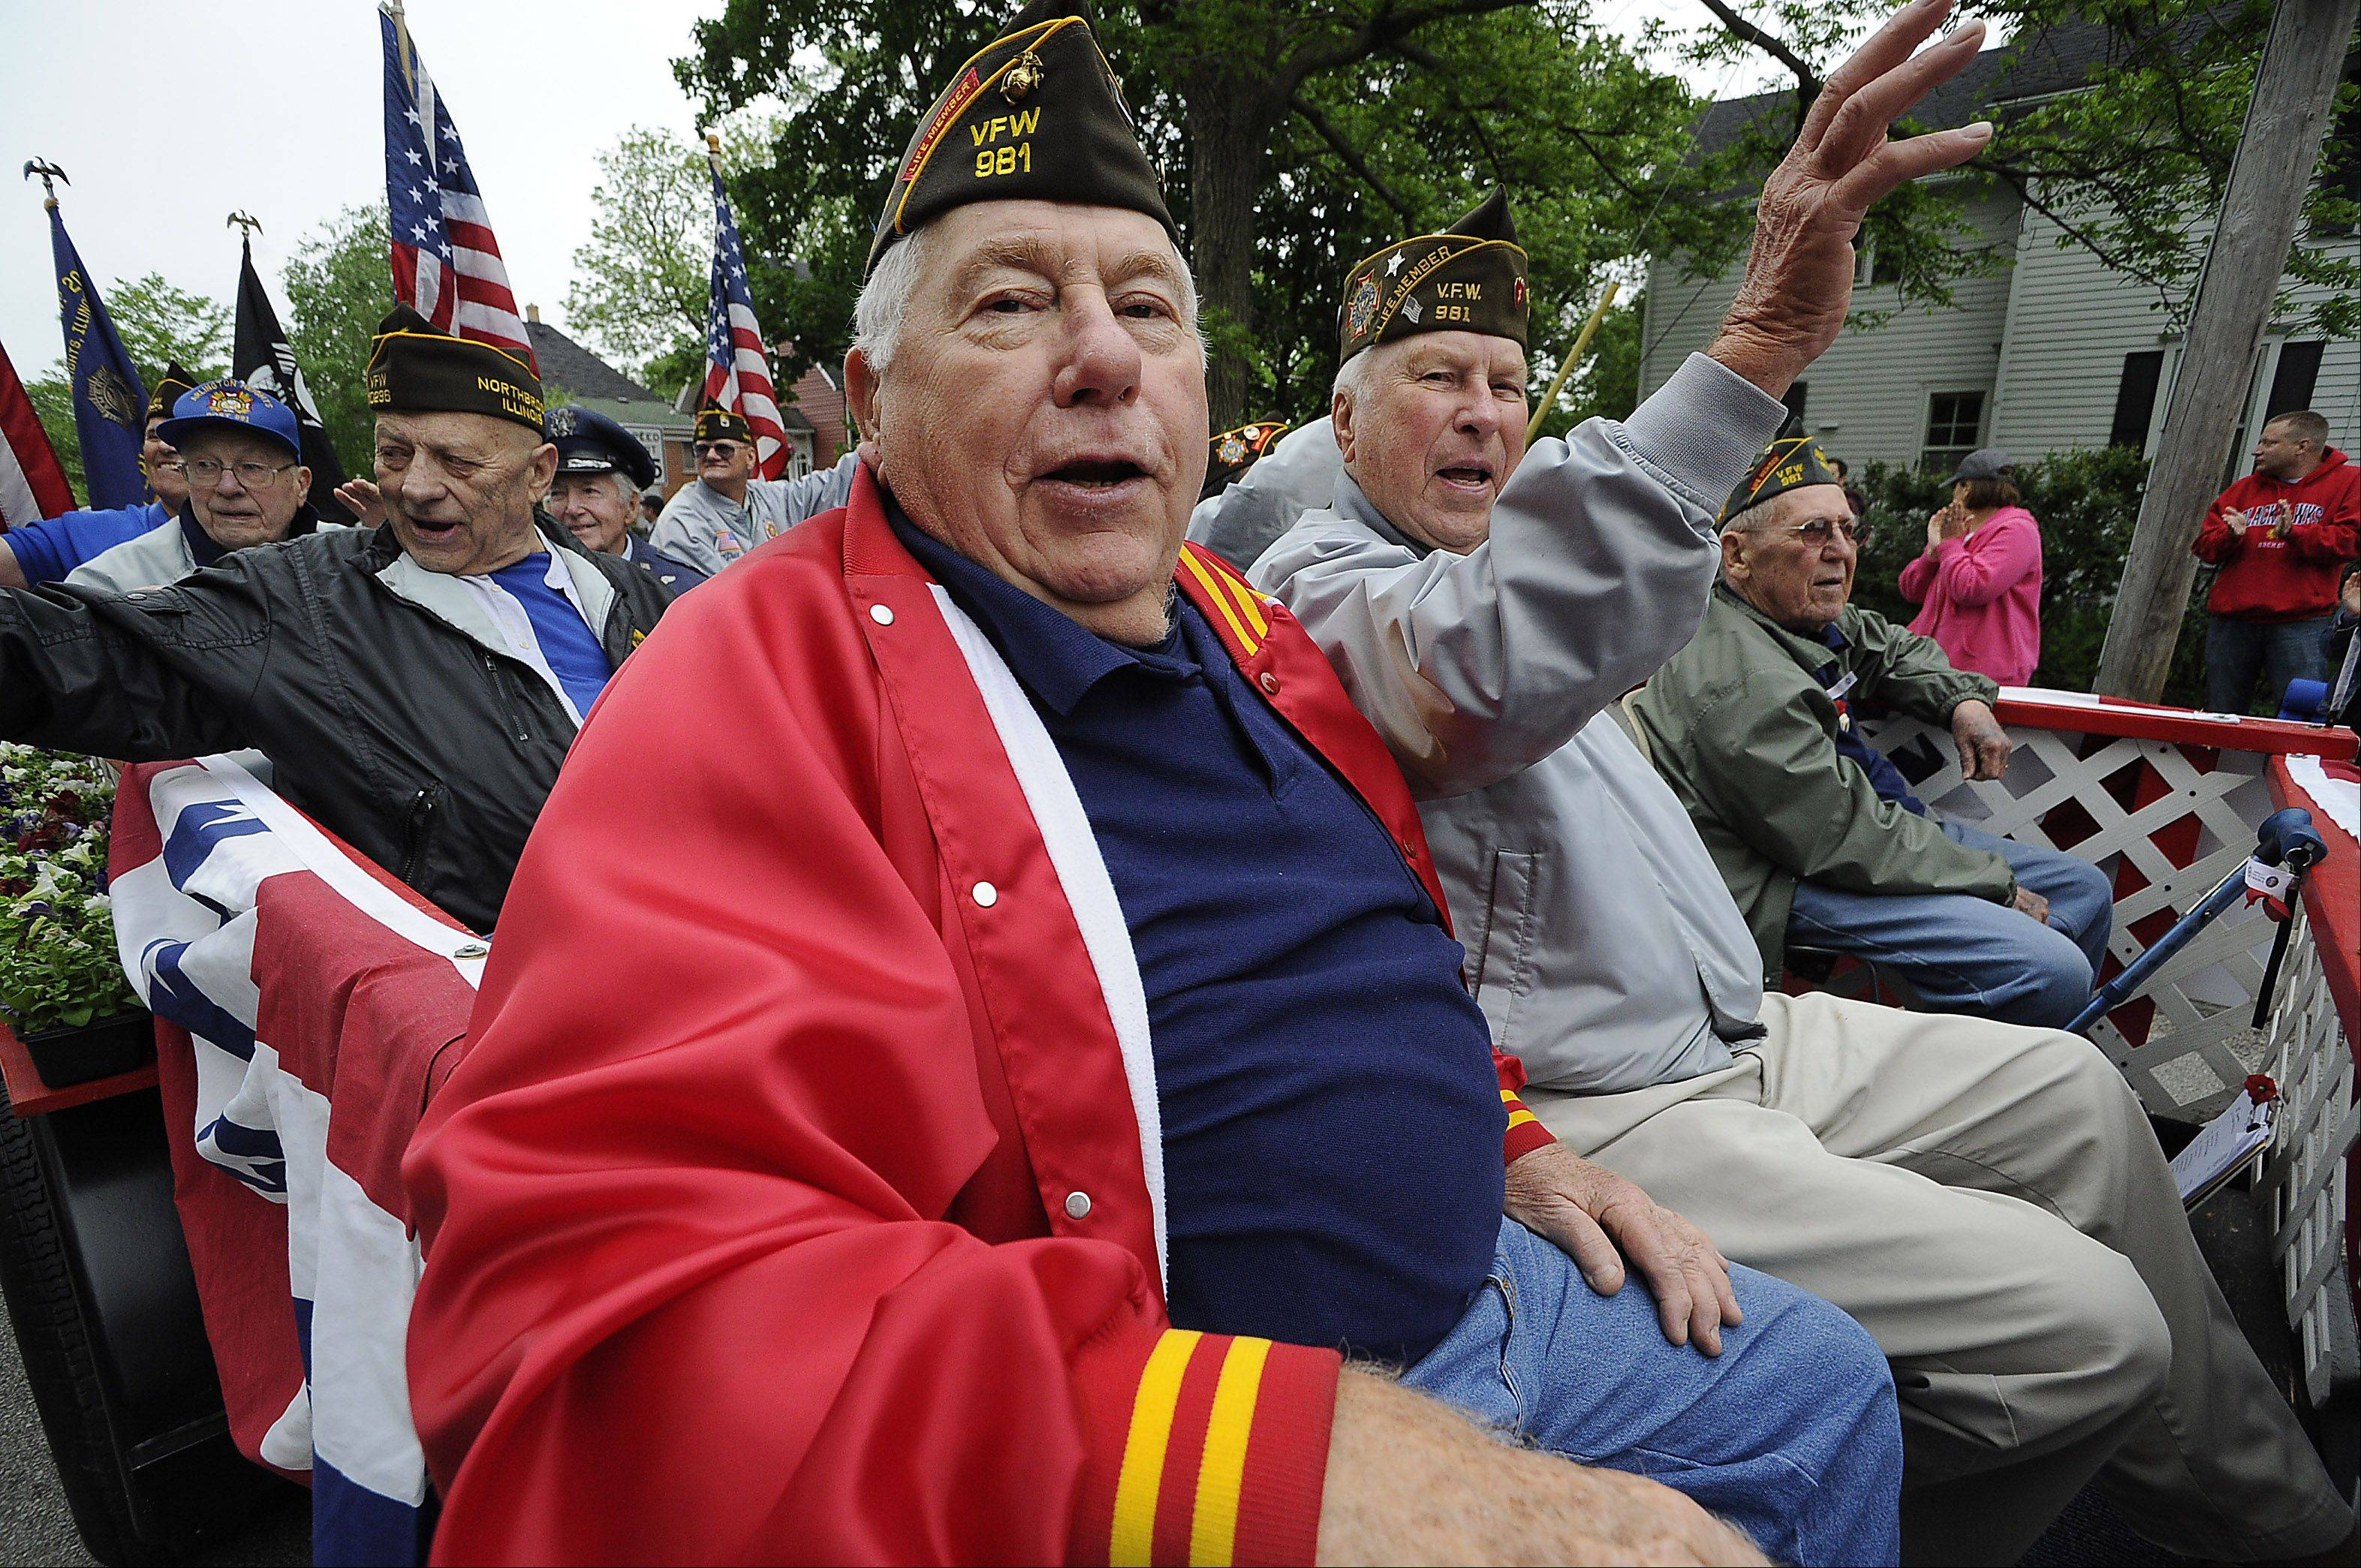 Chuck Shields of Arlington Heights and Leo Larson from Kildeer who are from the Veterans of Foreign War post 981 both served in the Korean War ride in the Arlington Heights parade as part of Arlington's Fallen Heroes Memorial Day Ceremony on Monday.